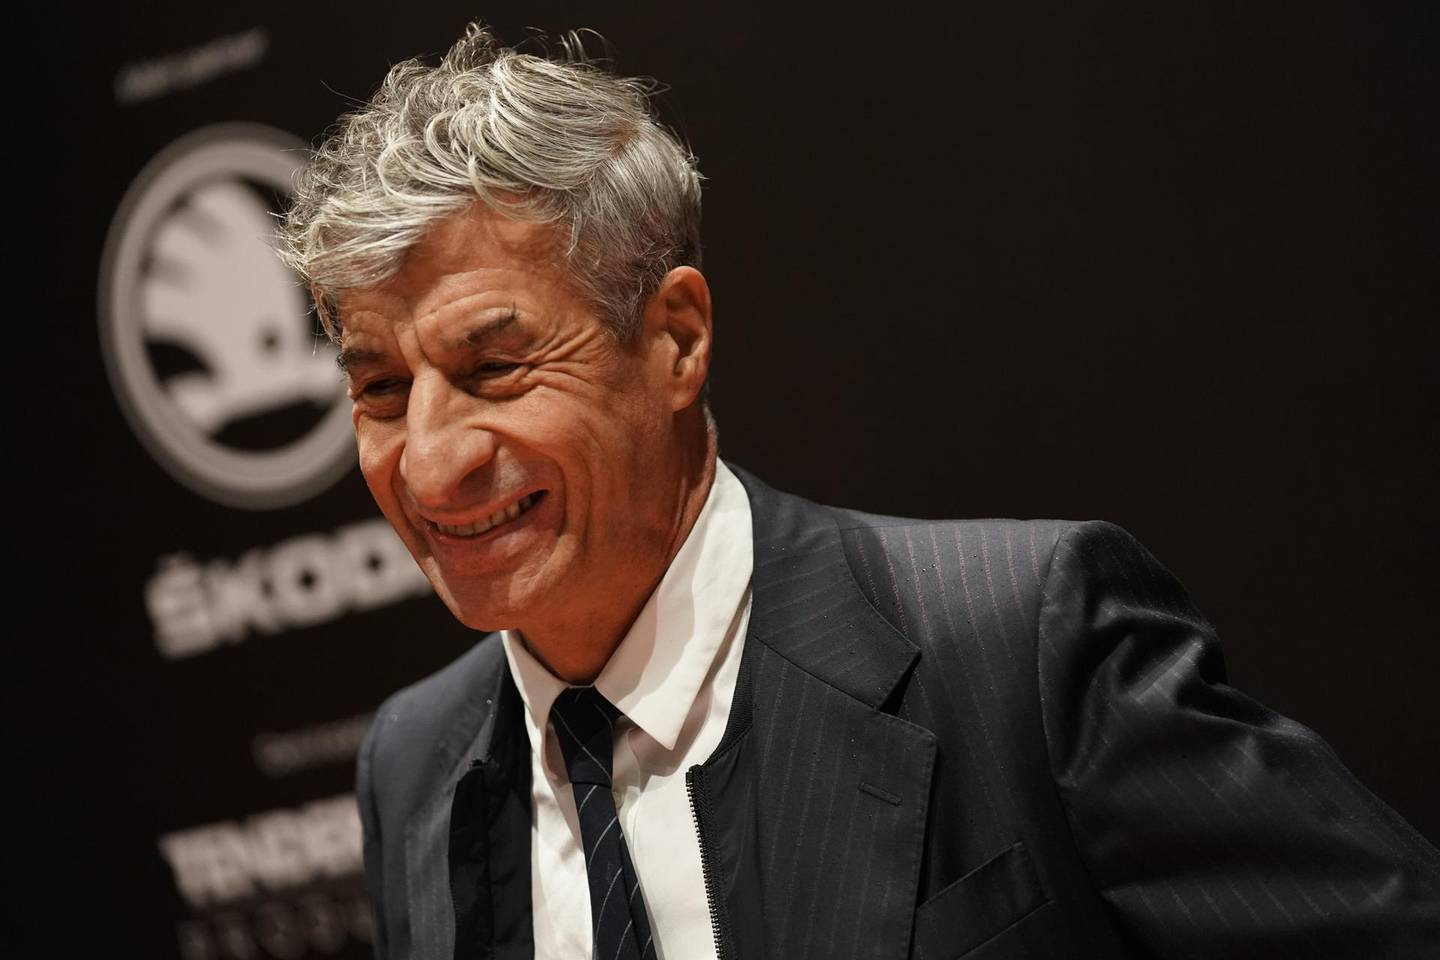 MILAN, ITALY - NOVEMBER 23: Maurizio Cattelan attends the Vanity Fair Stories 2019 Awards Photocall at The Space Cinema Odeon on November 23, 2019 in Milan, Italy. (Photo by Vittorio Zunino Celotto/Getty Images)